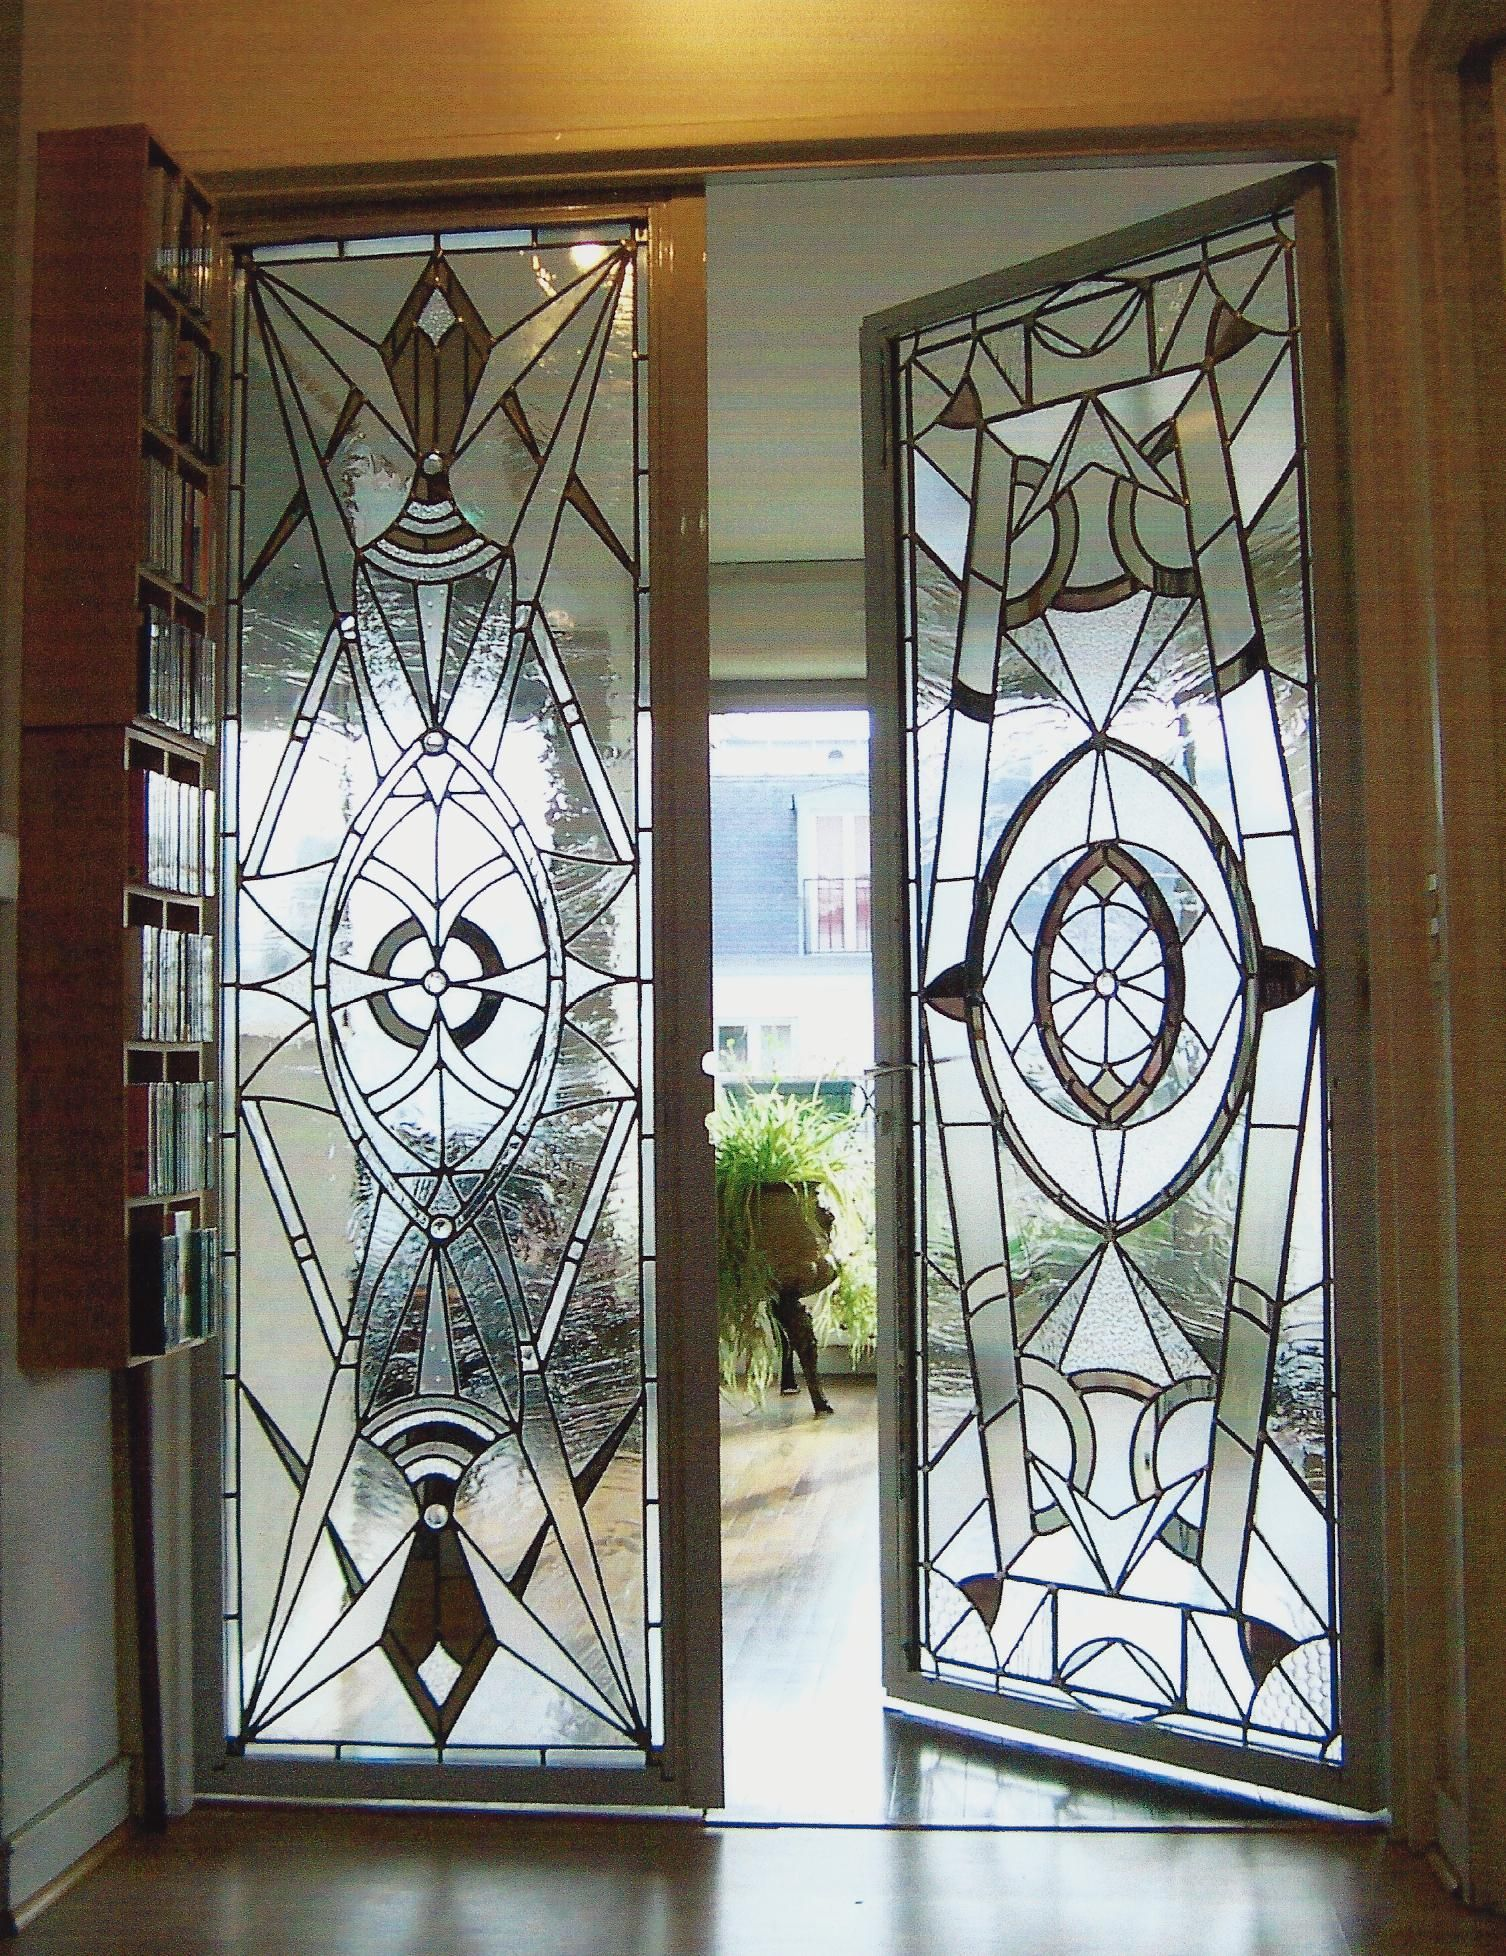 Art deco glass doors art nouveau art deco pinterest art deco